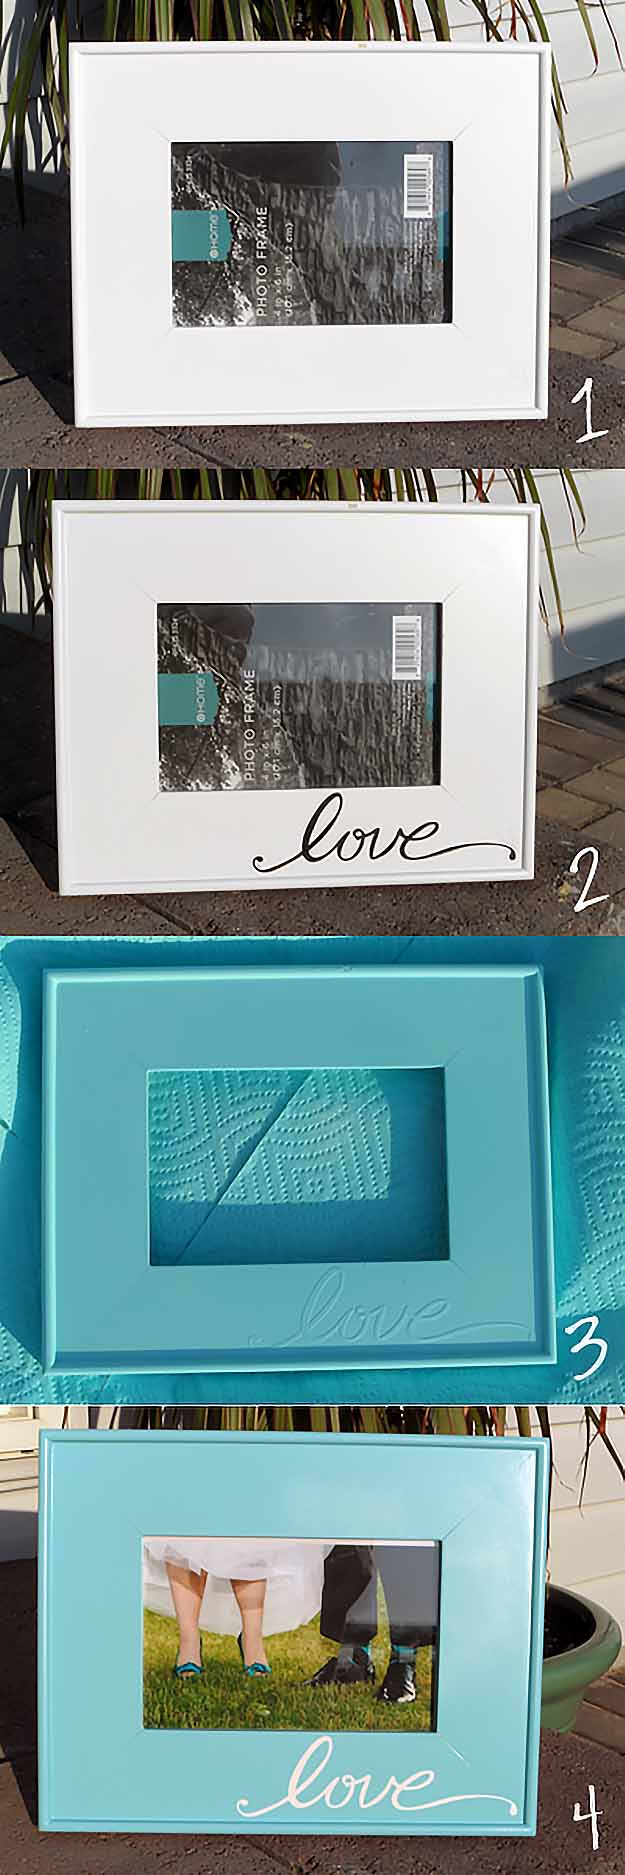 Easy Craft Ideas | DIY Picture Frame Home State Projects #diy #crafts